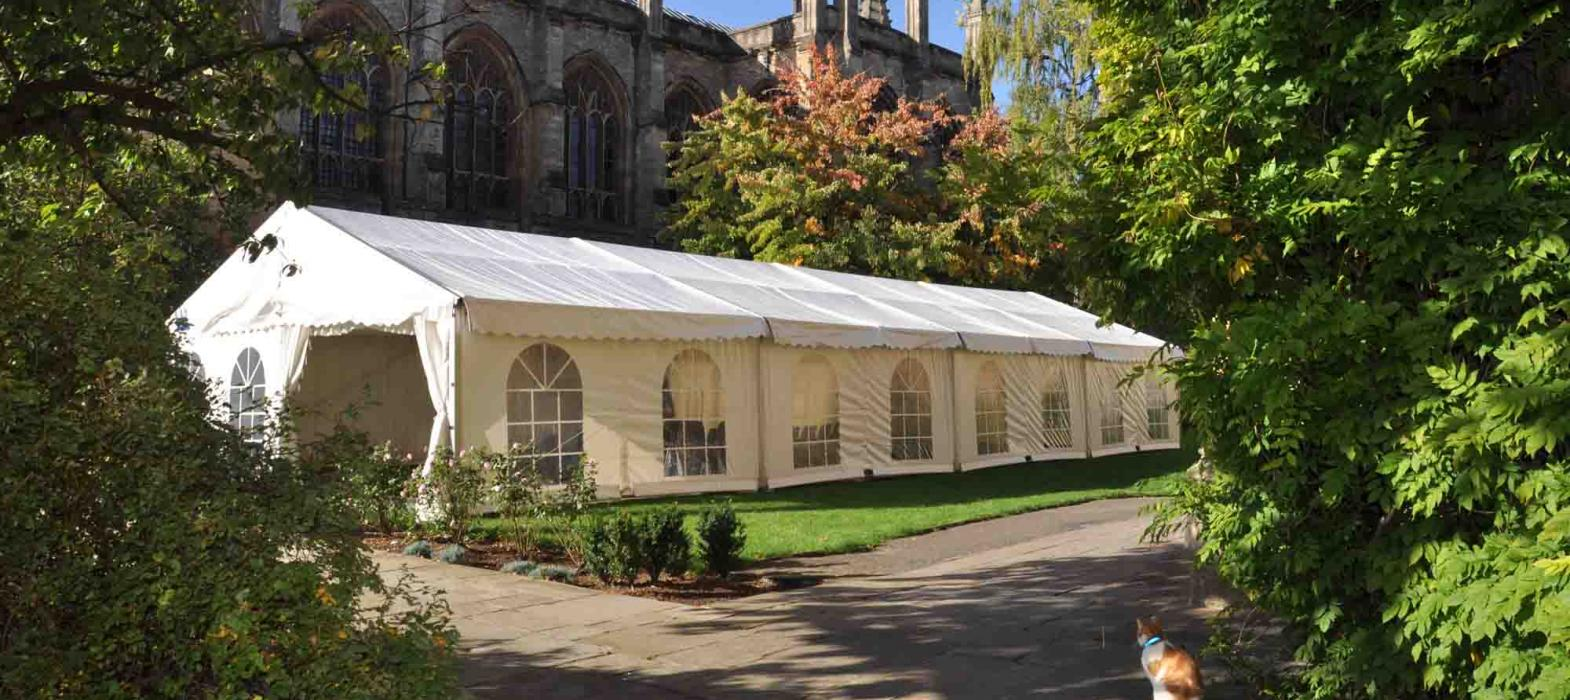 The Freshers' tent